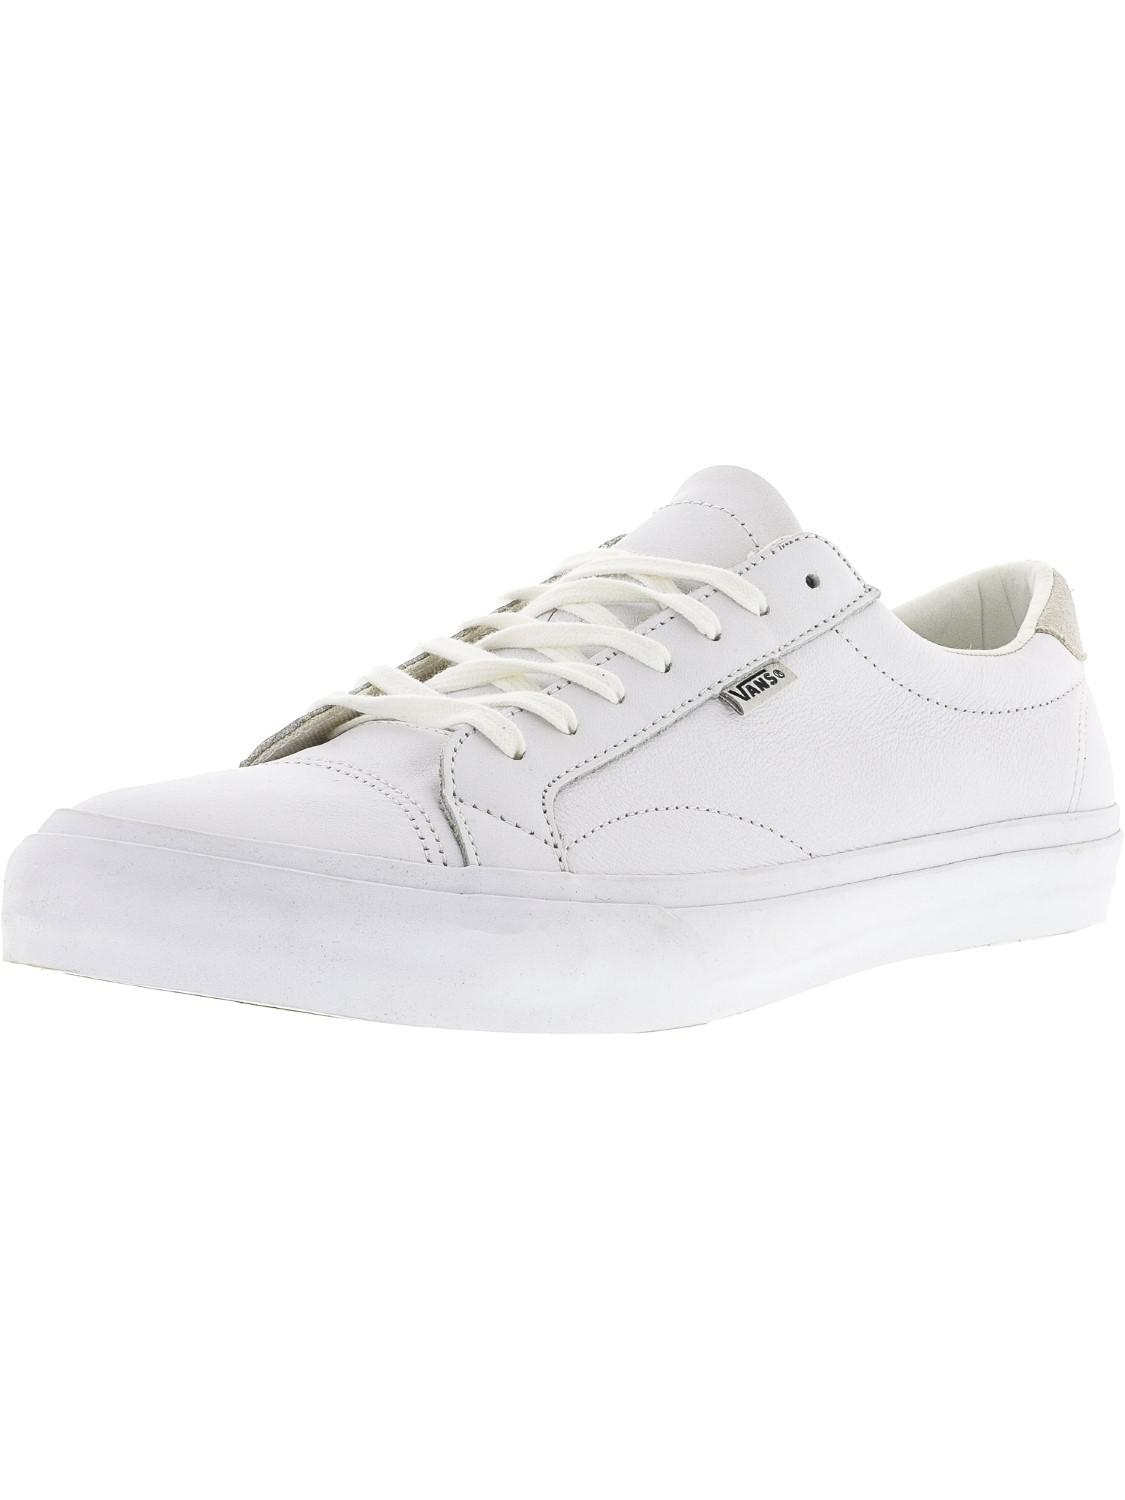 61f79d14a97 Vans. Women s White Court Dx Leather Ankle-high Canvas Skateboarding Shoe  ...